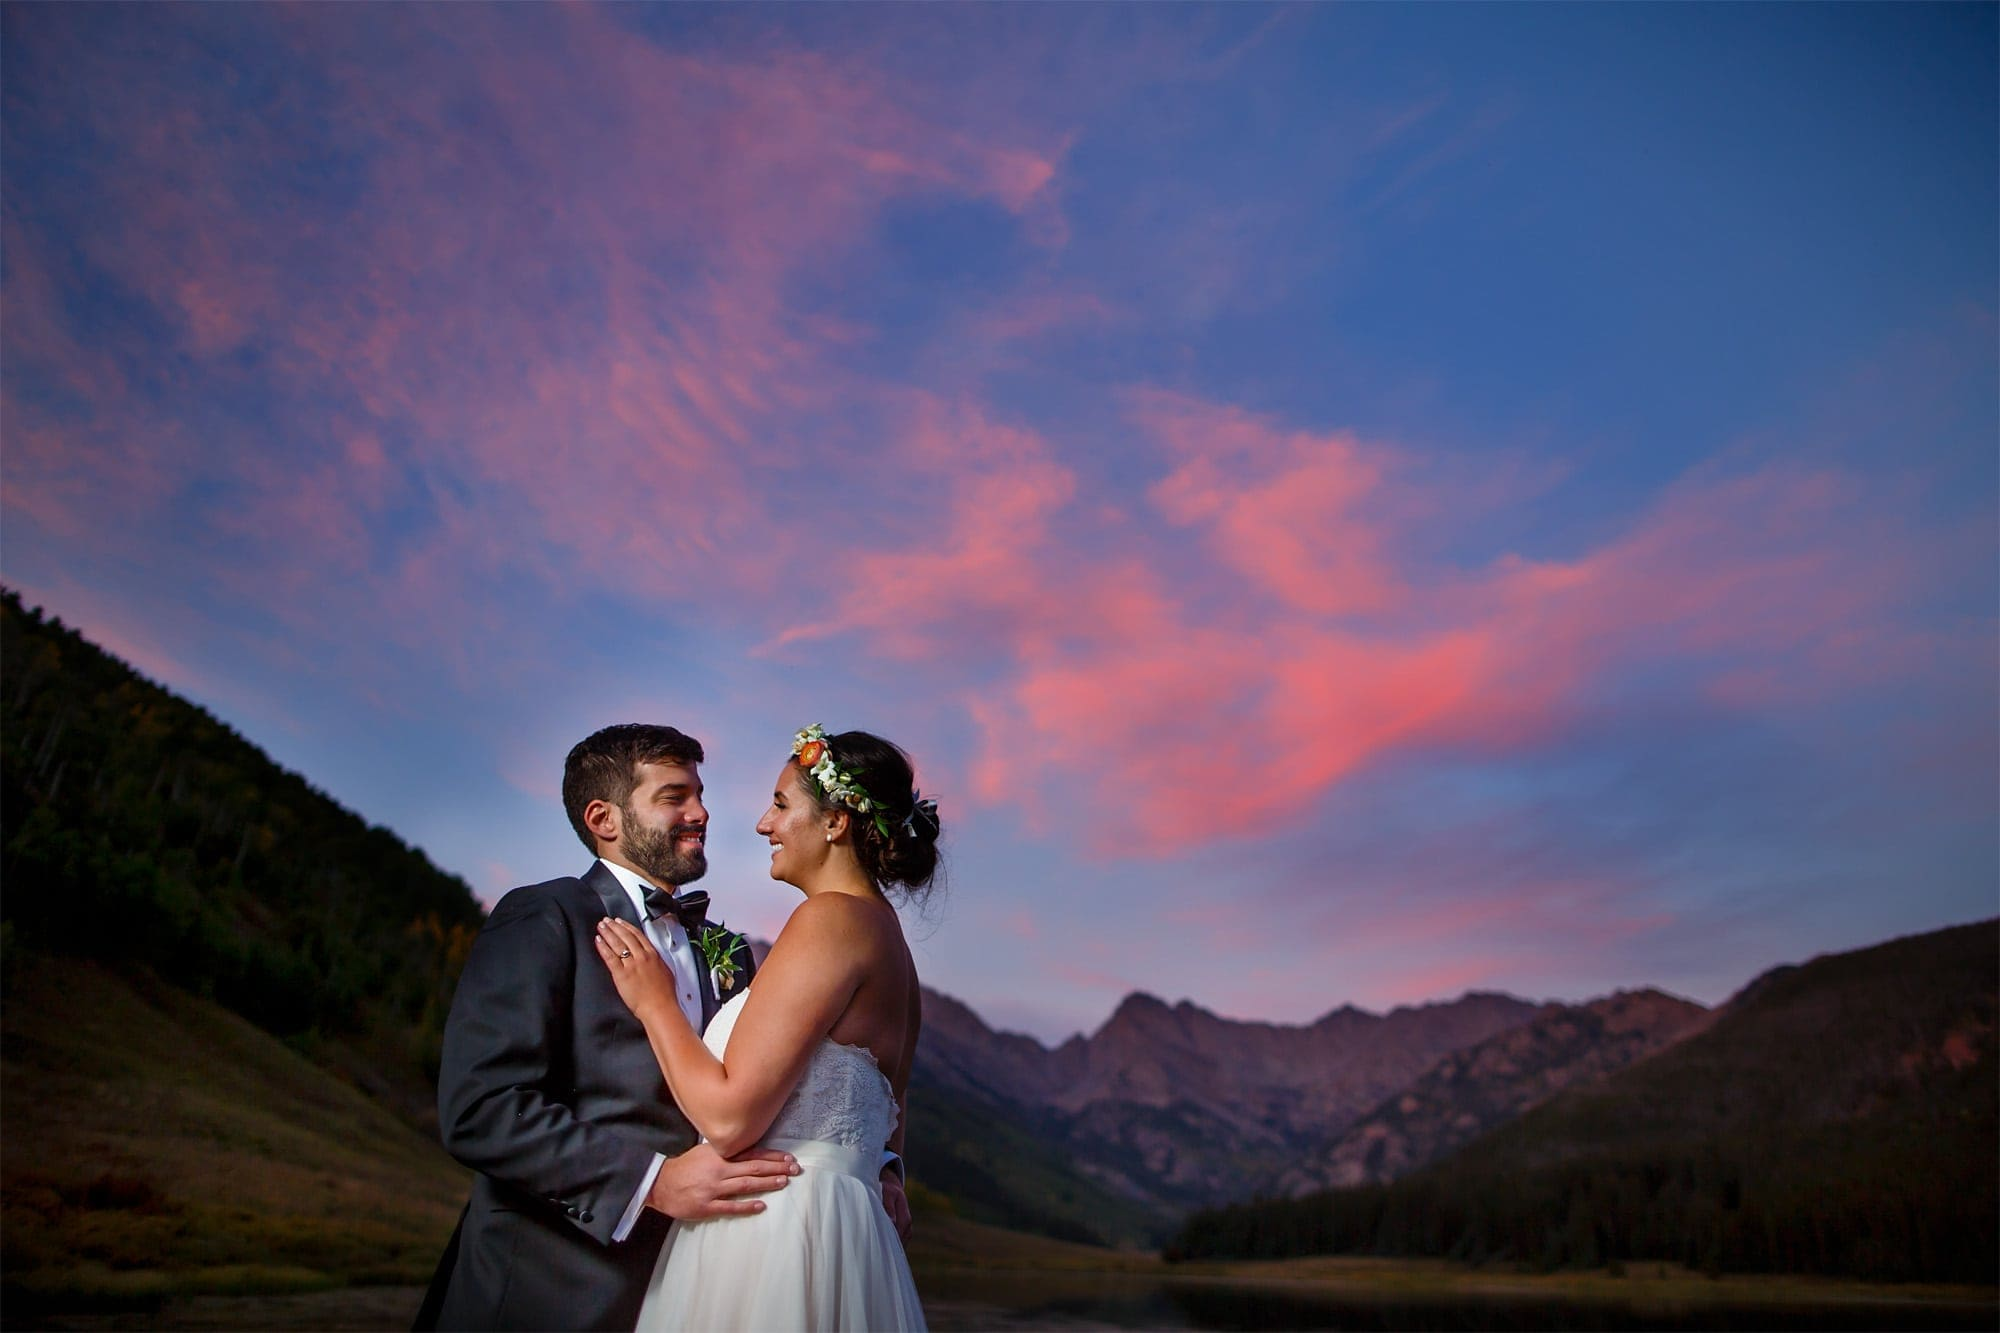 Becky and Brian share a moment together as the sunset lights up the sky above the Gore mountain range at Piney River Ranch in September outside of Vail, Colorado.